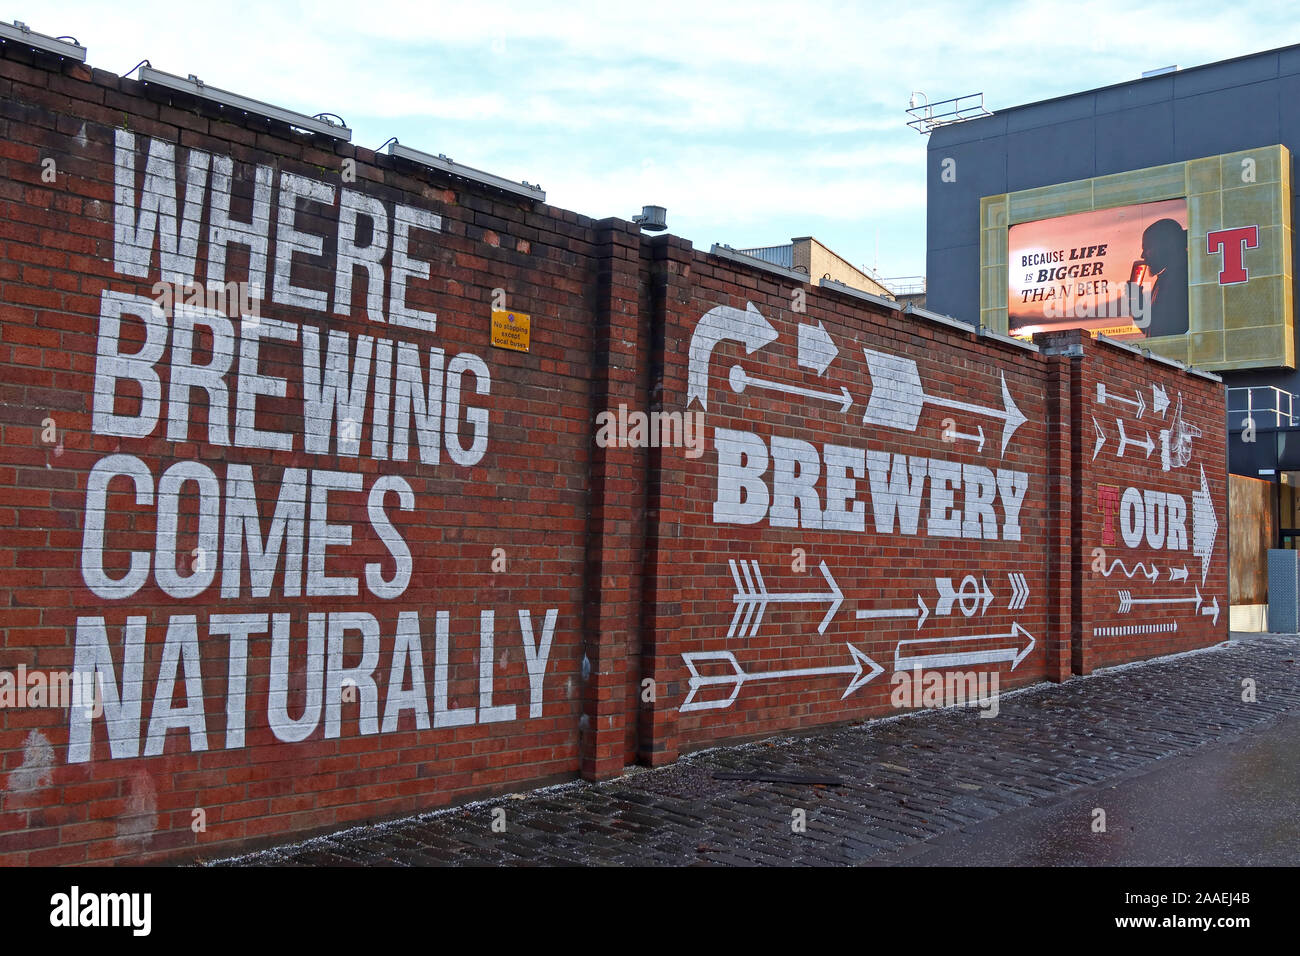 GotonySmith,UK,city,city centre,HotpixUK,@HotpixUK,beverage,beer,G31 1JD,G31,Duke Street,Duke St,of Scottish lager,of lager,painting,Glasgow East End,lager,Scottish Lager,painting artwork Glasgow East End,wall,Wellpark Tennents,Brewery,tour,brewery tour,lager brewery,C&C Group